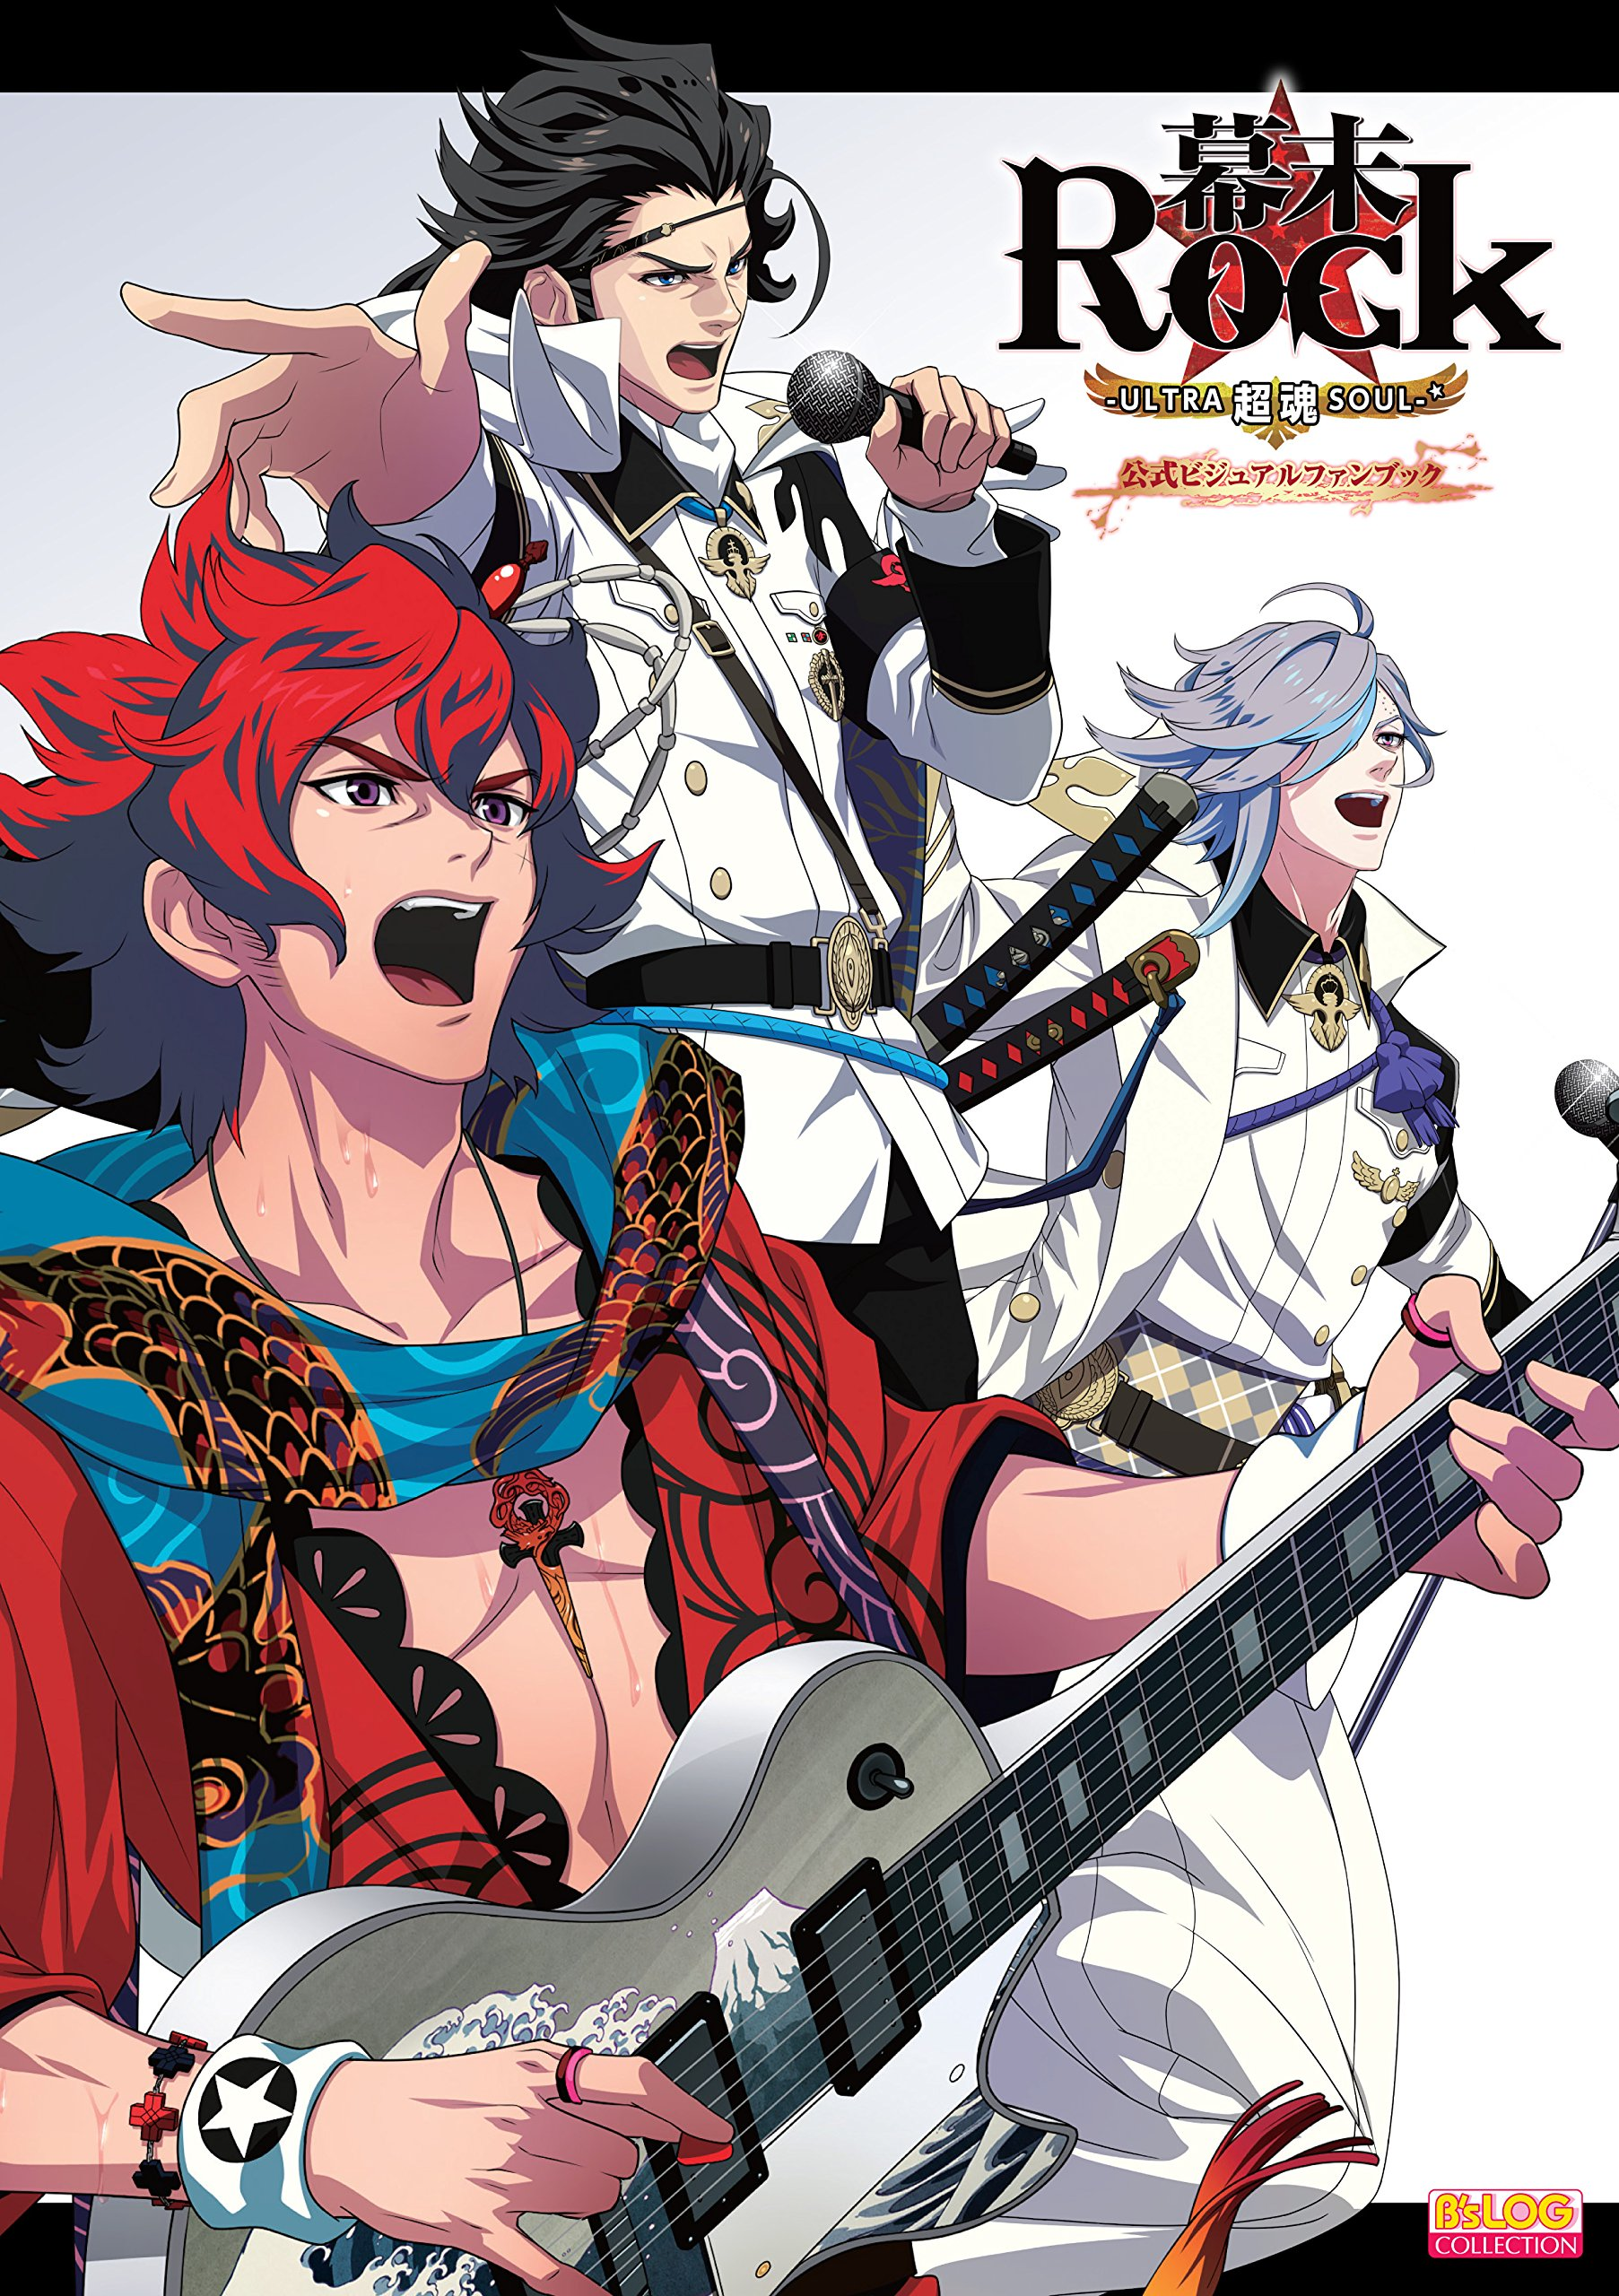 Download Bakumatsu Rock Super Soul Official Visual Fan Book (B's - LOG Collection) [JAPANESE EDITION GAME BOOK] pdf epub